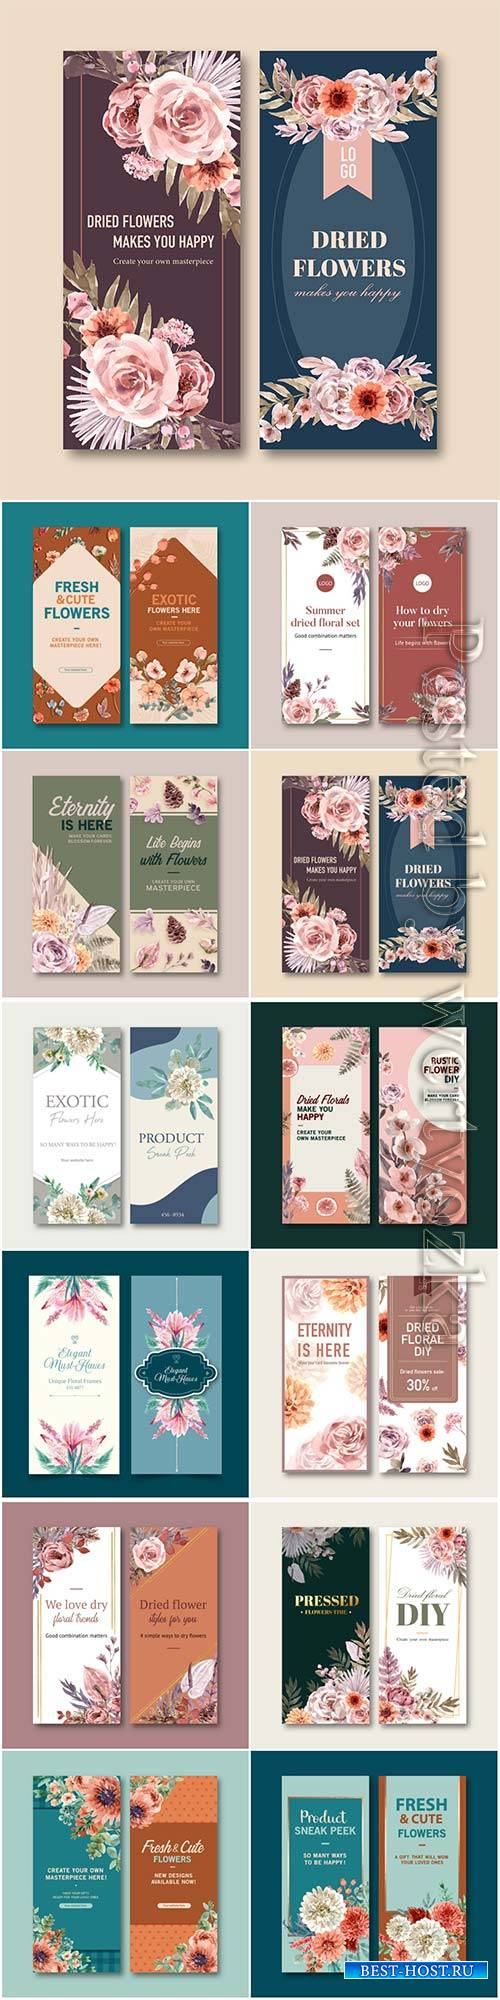 Dried floral flyer template watercolor illustration